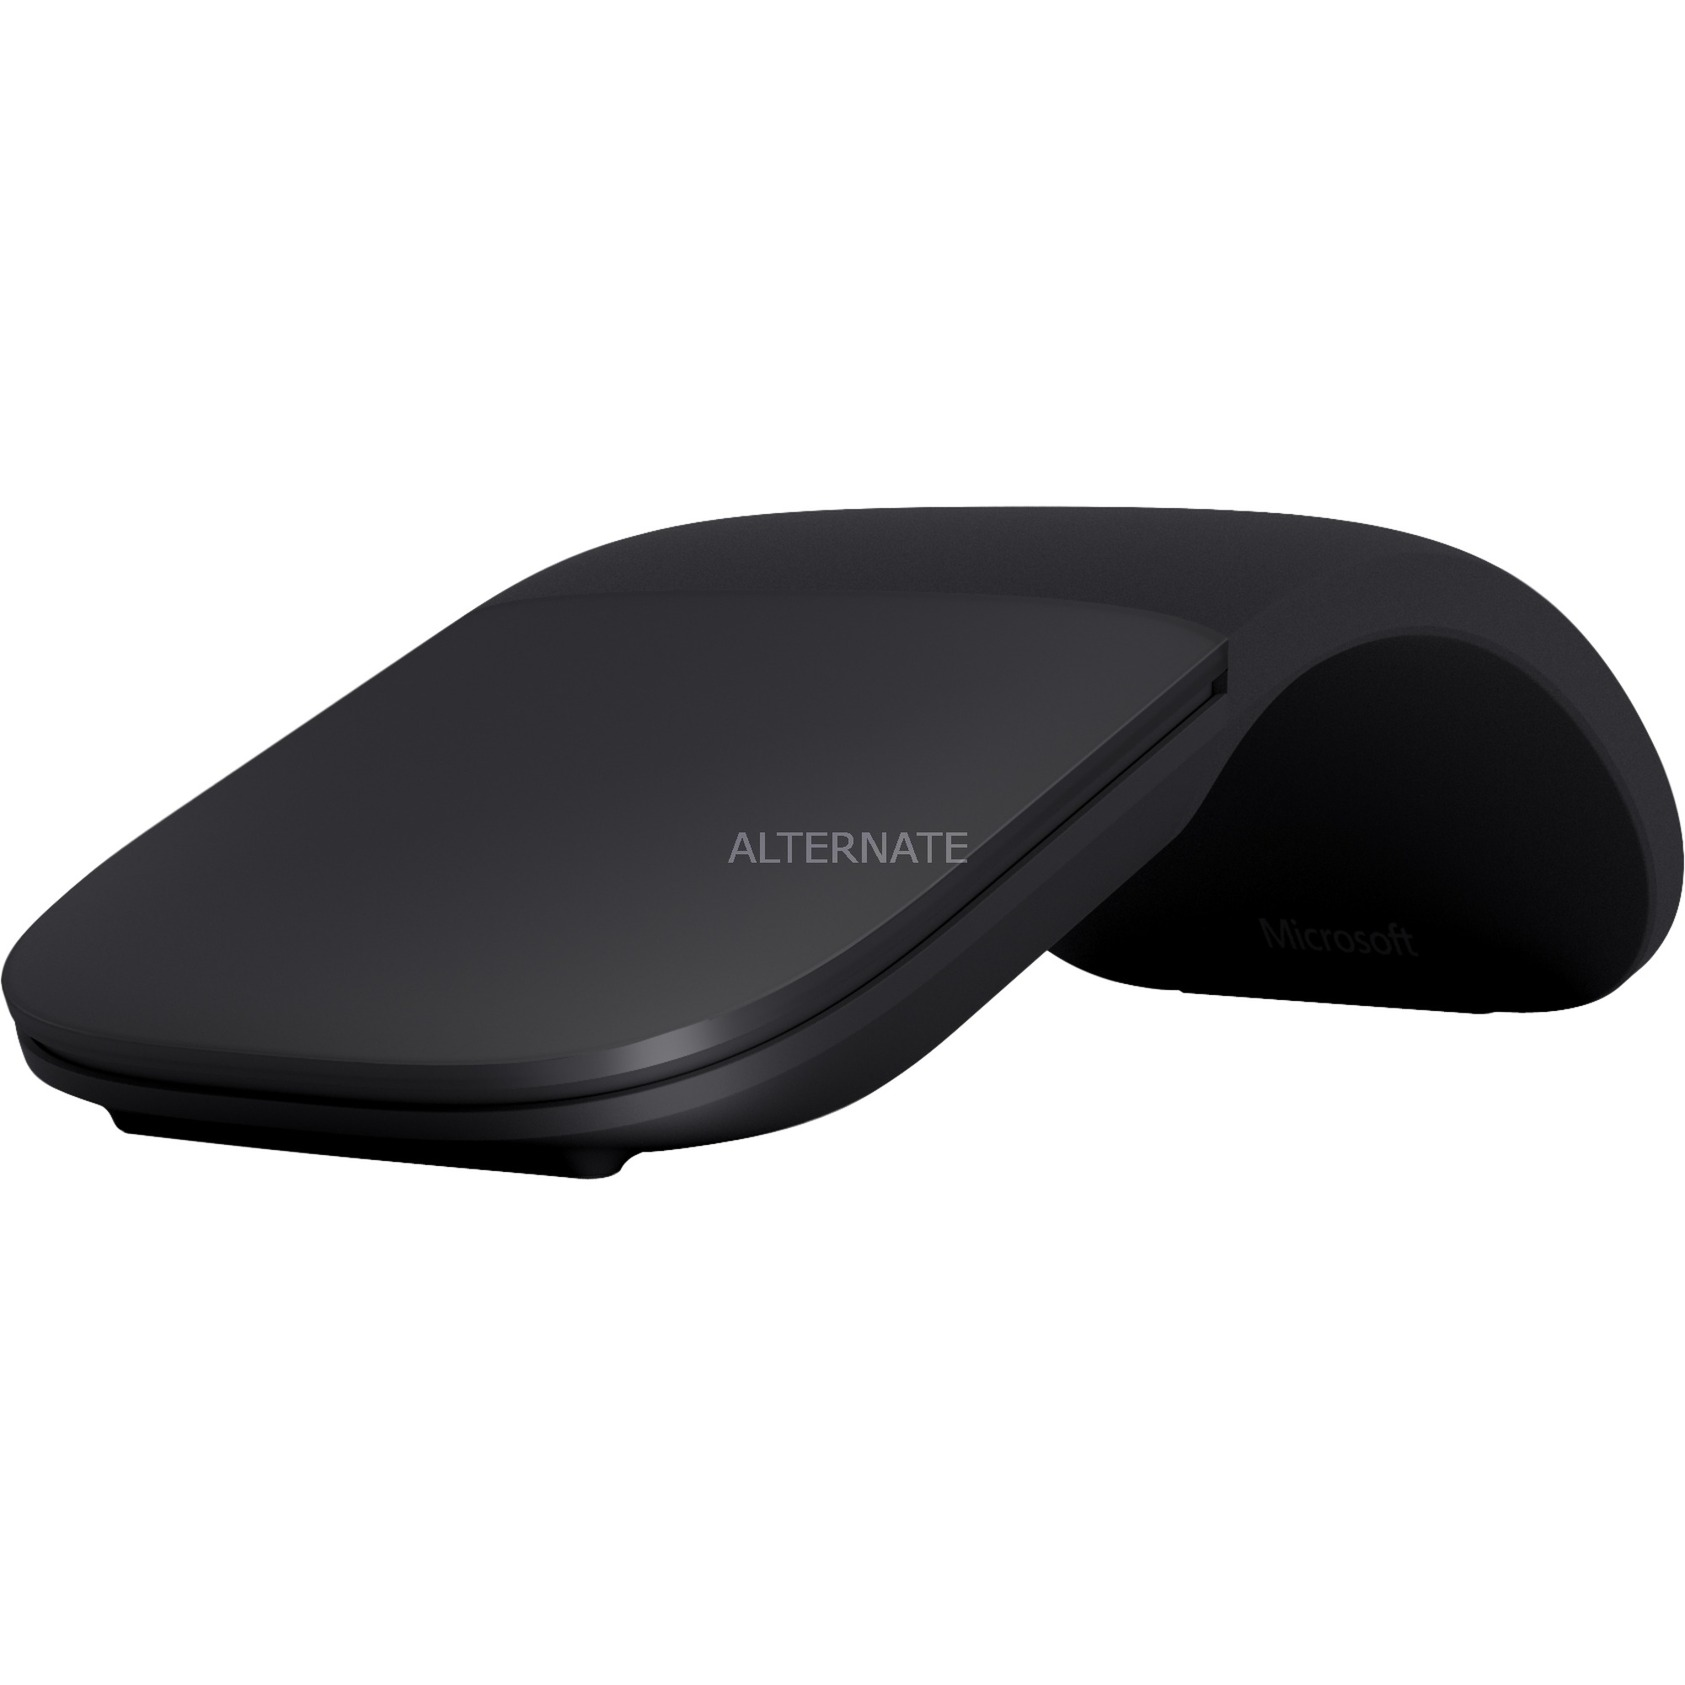 Surface Arc Mouse, Maus von Microsoft